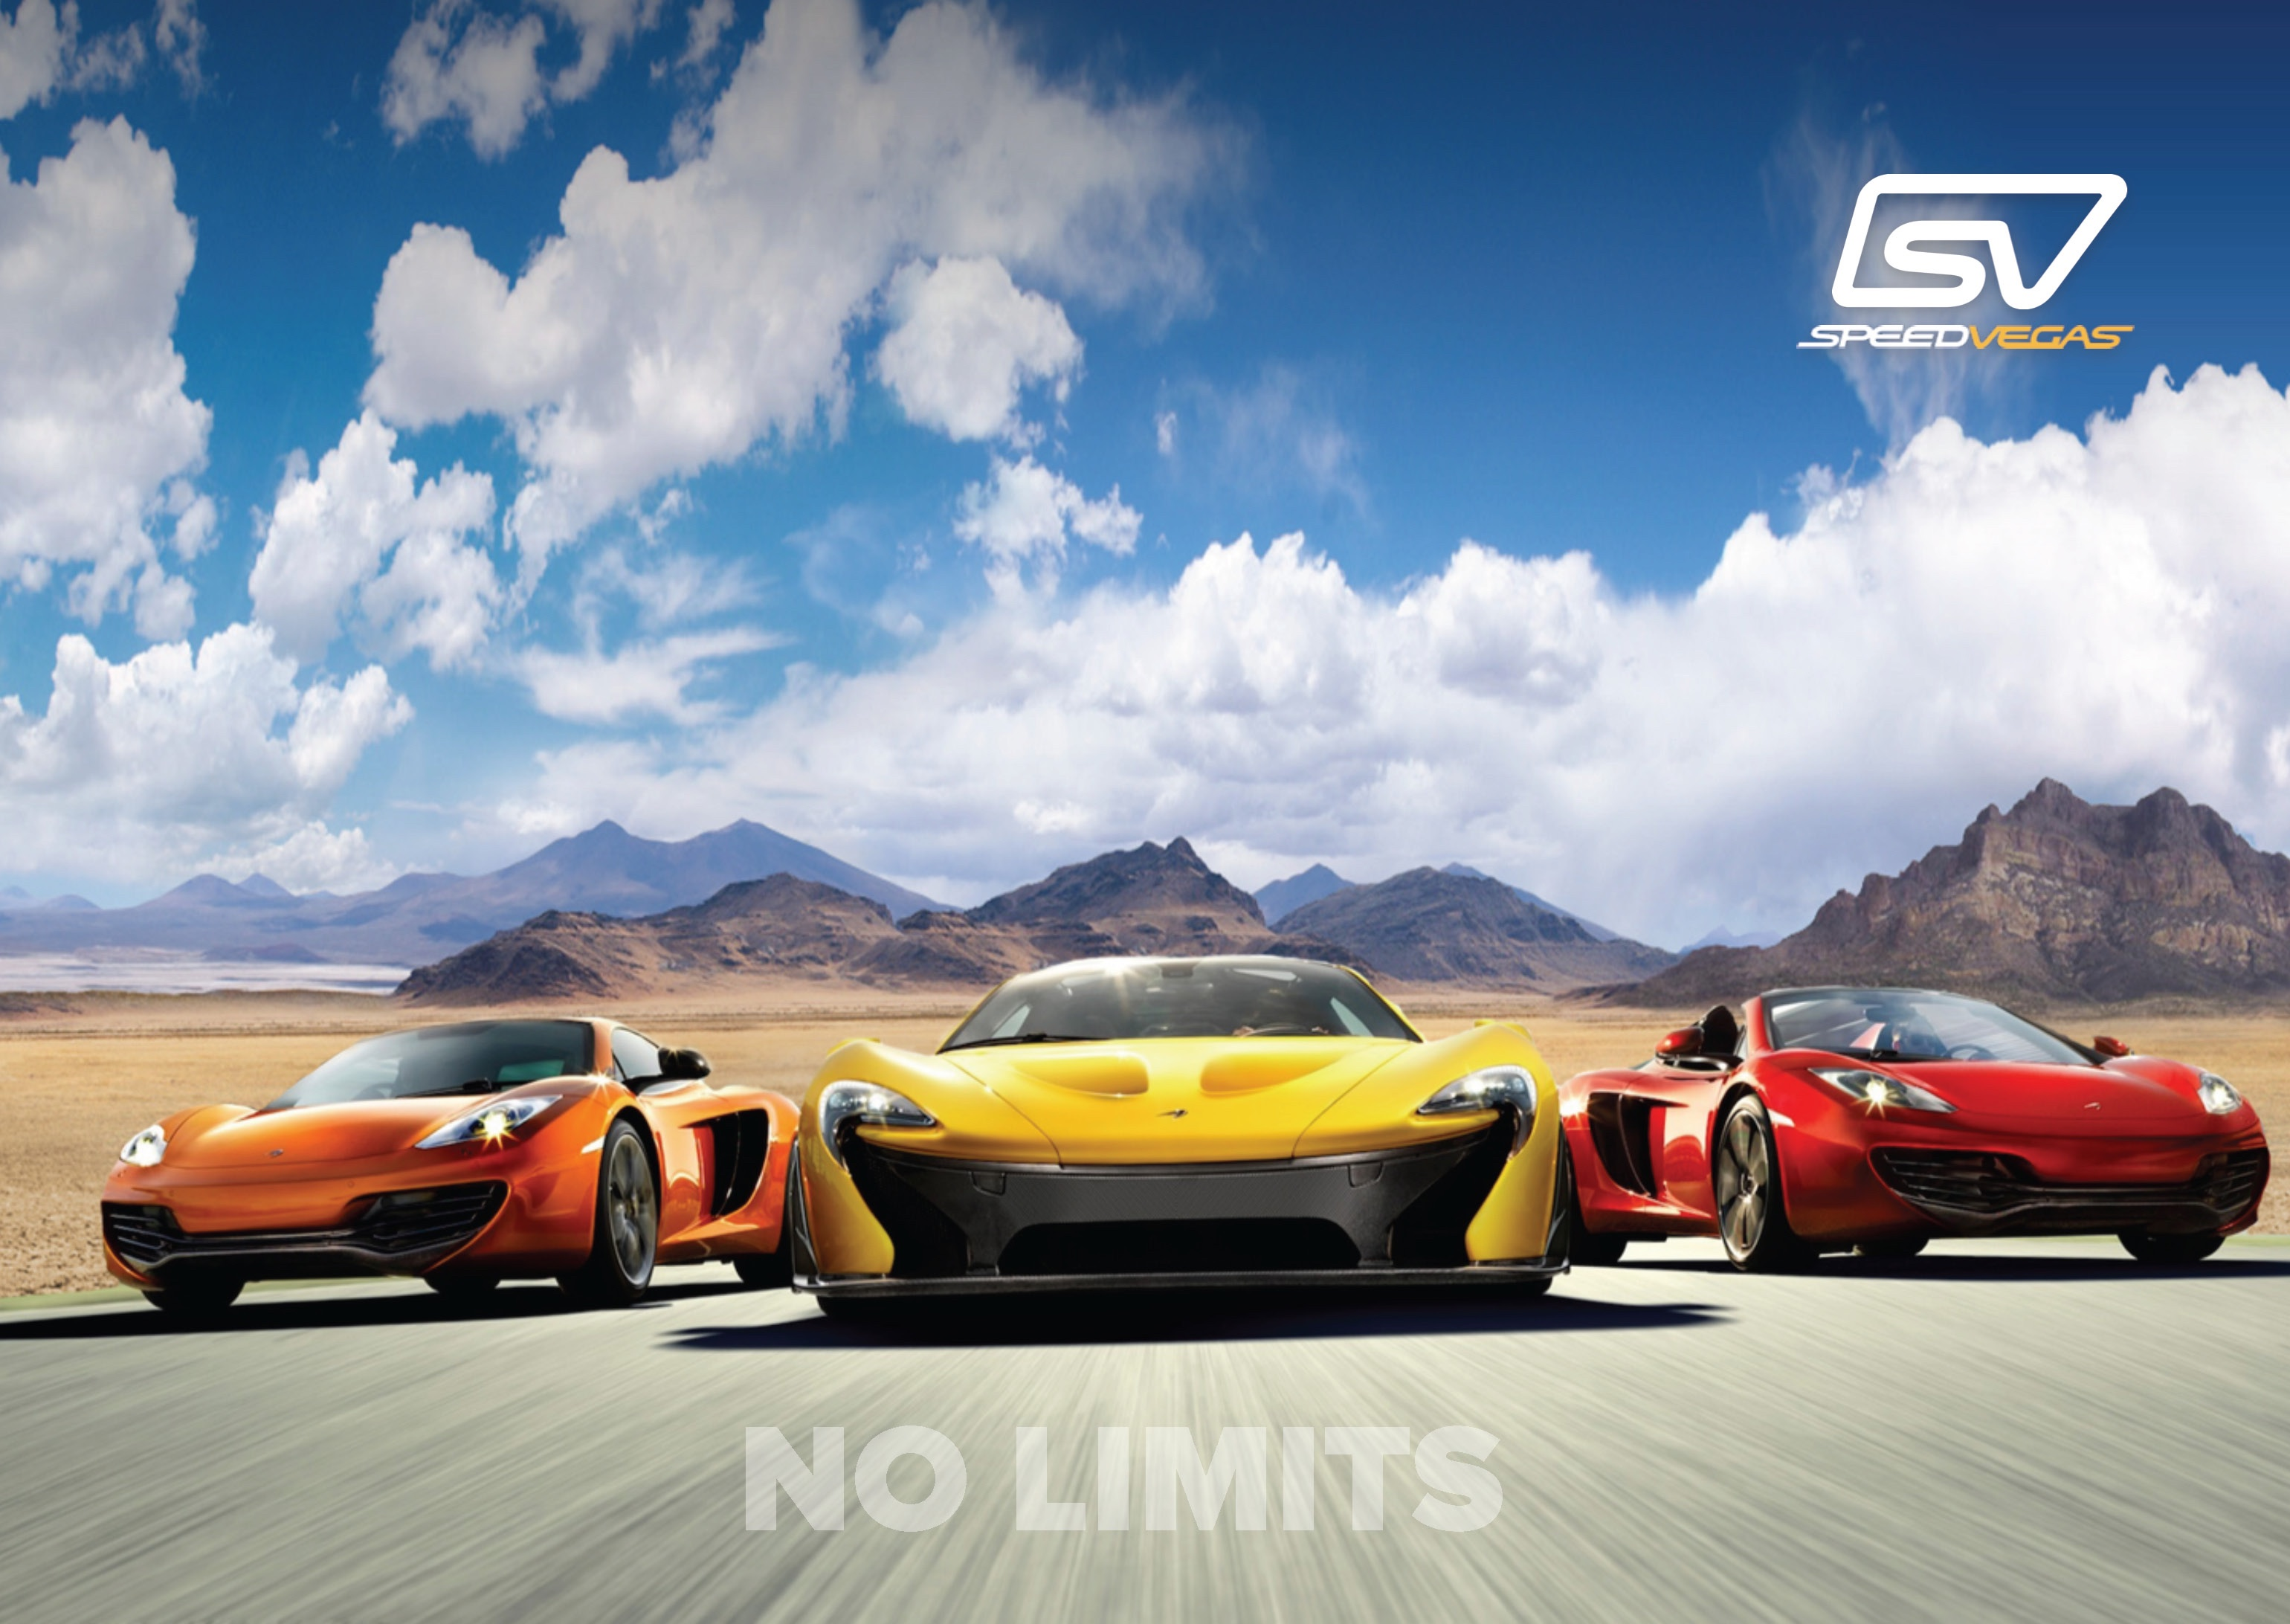 Speedvegas Exotic Track Pack Driving Experience Helicopter Combo